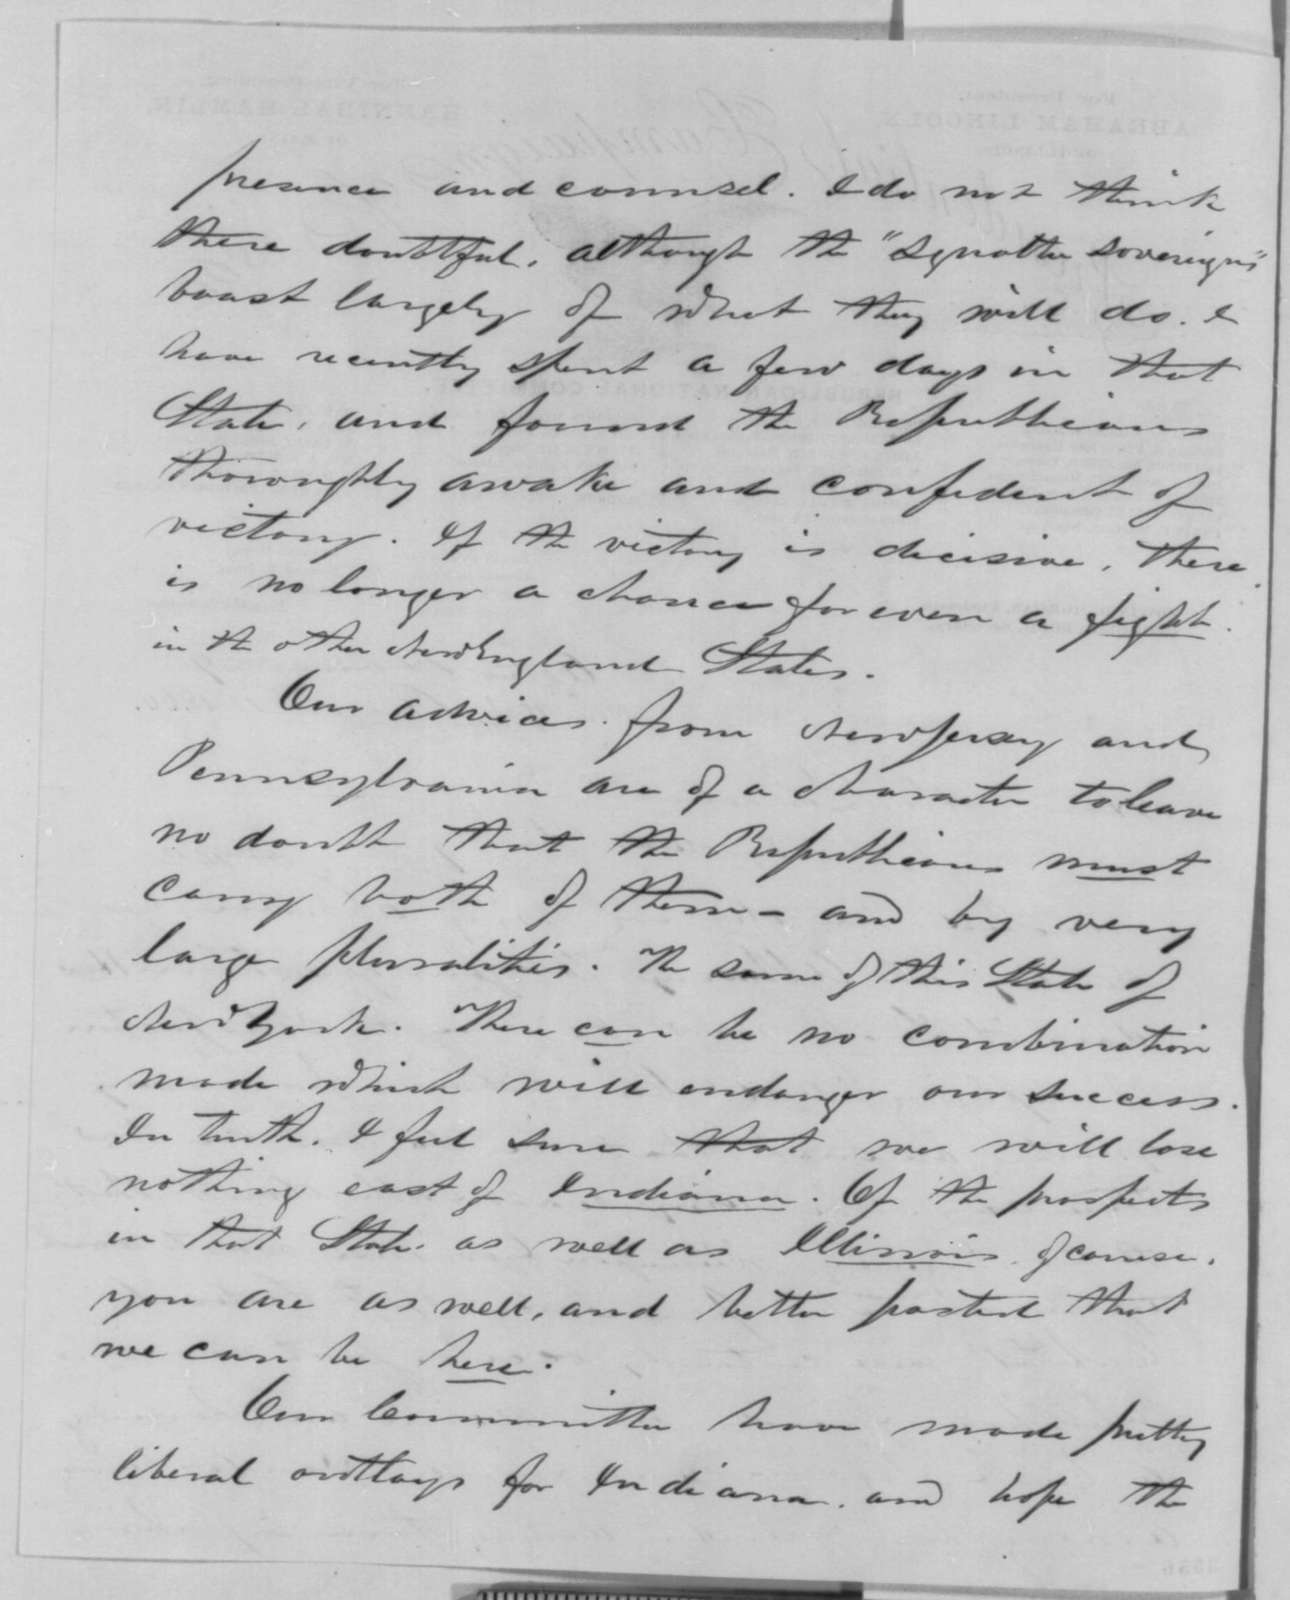 George G  Fogg to Abraham Lincoln, Saturday, August 18, 1860